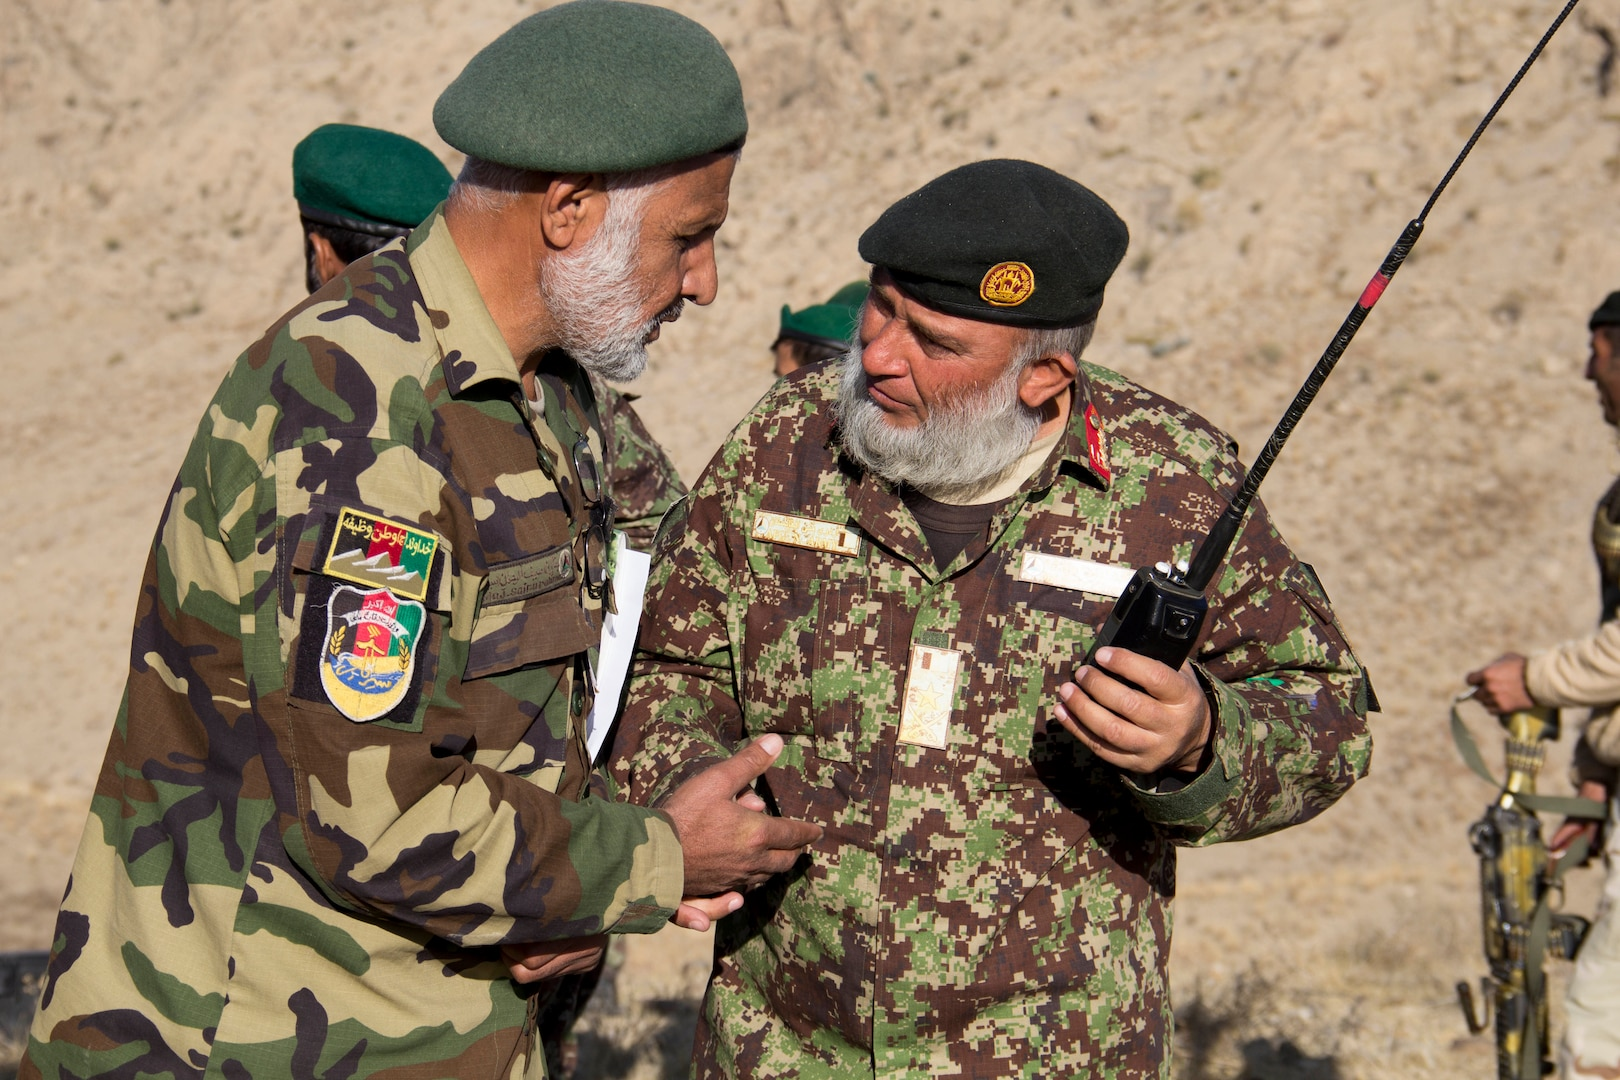 Two Afghan National Army officers with the 201st Corps discuss call for fire missions during a tolay attack battle drill near Camp Torah, Afghanistan, Dec. 27, 2016. The attack battle drill was conducted as part of the corps collective training cycle to build capability and capacity within the organization. (U.S. Army photo by Capt. Grace Geiger)